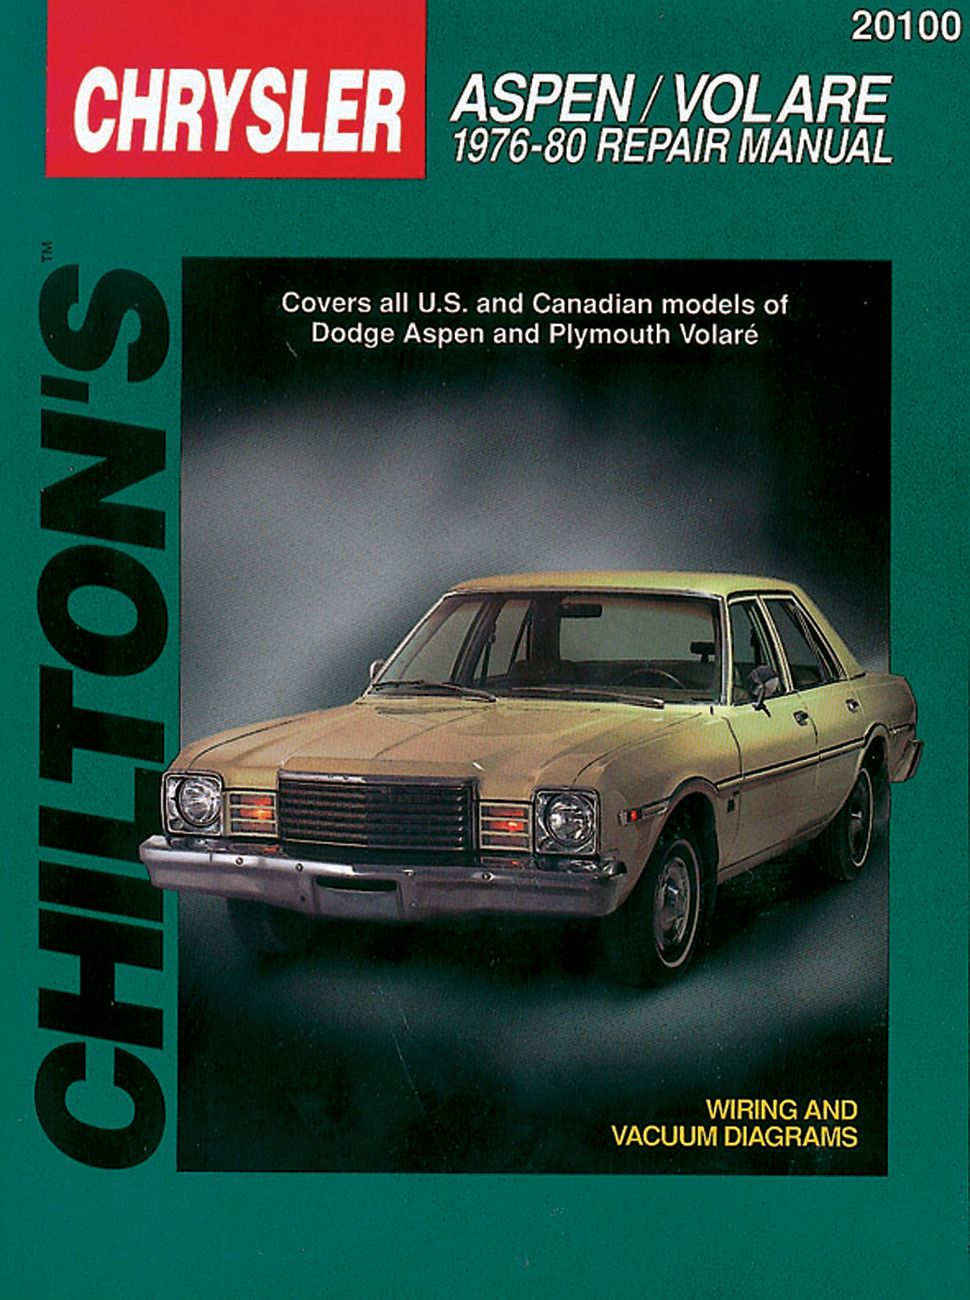 Wiring Diagram 1980 Volare Libraries Plymouth Diagramsdodge Aspen U0026 Chilton Repair Manual 1976